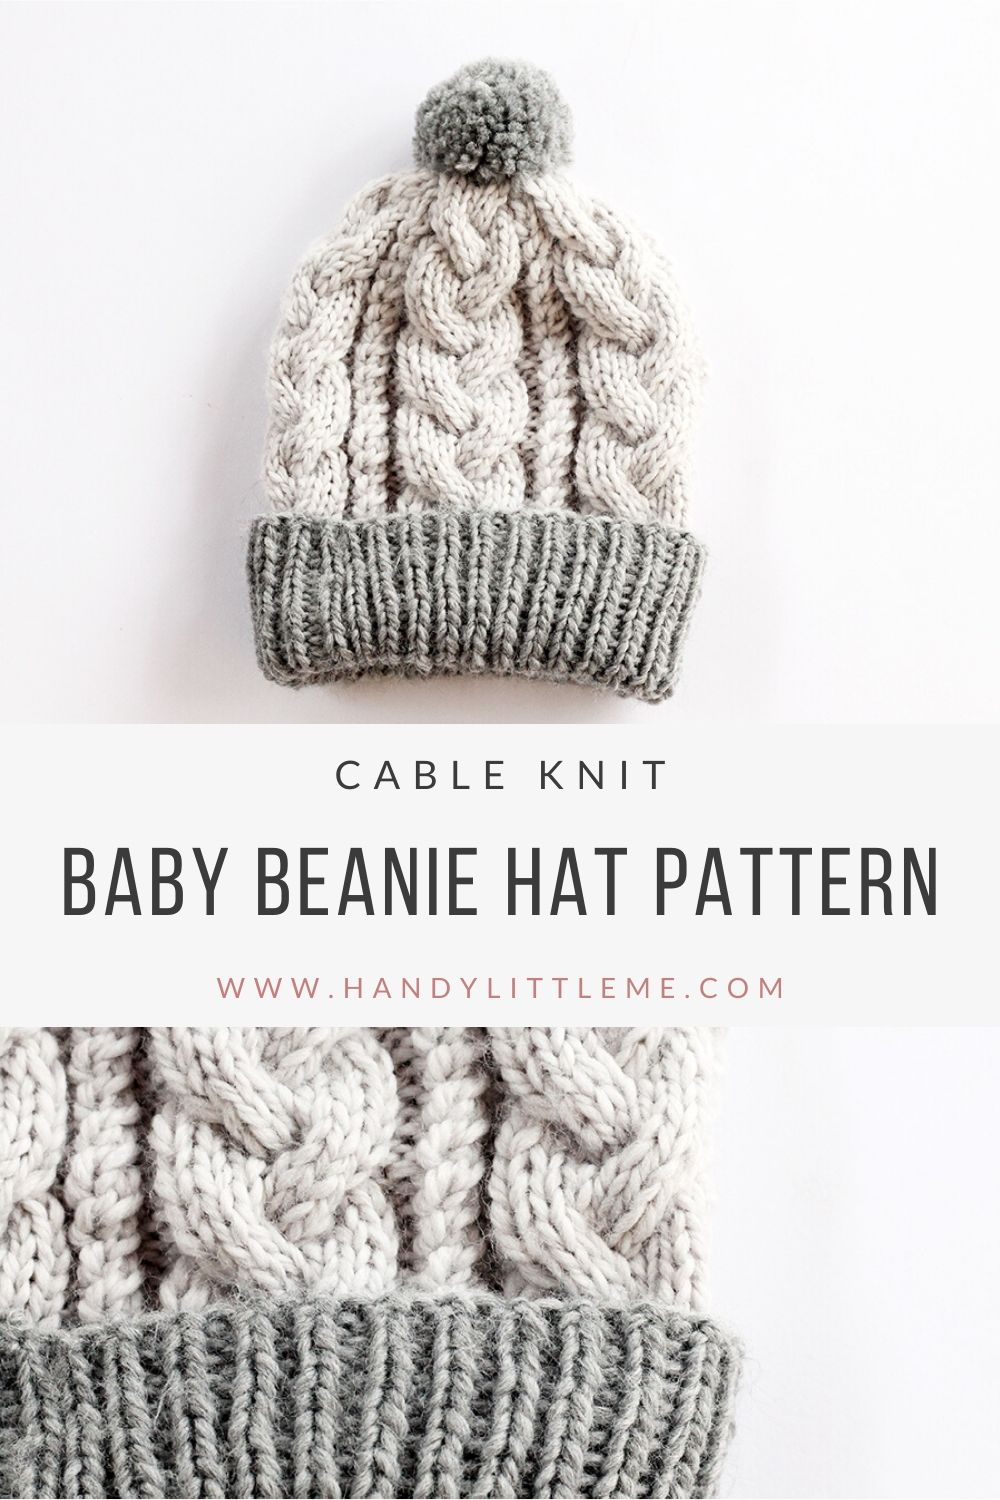 Baby beanie hat knitting pattern